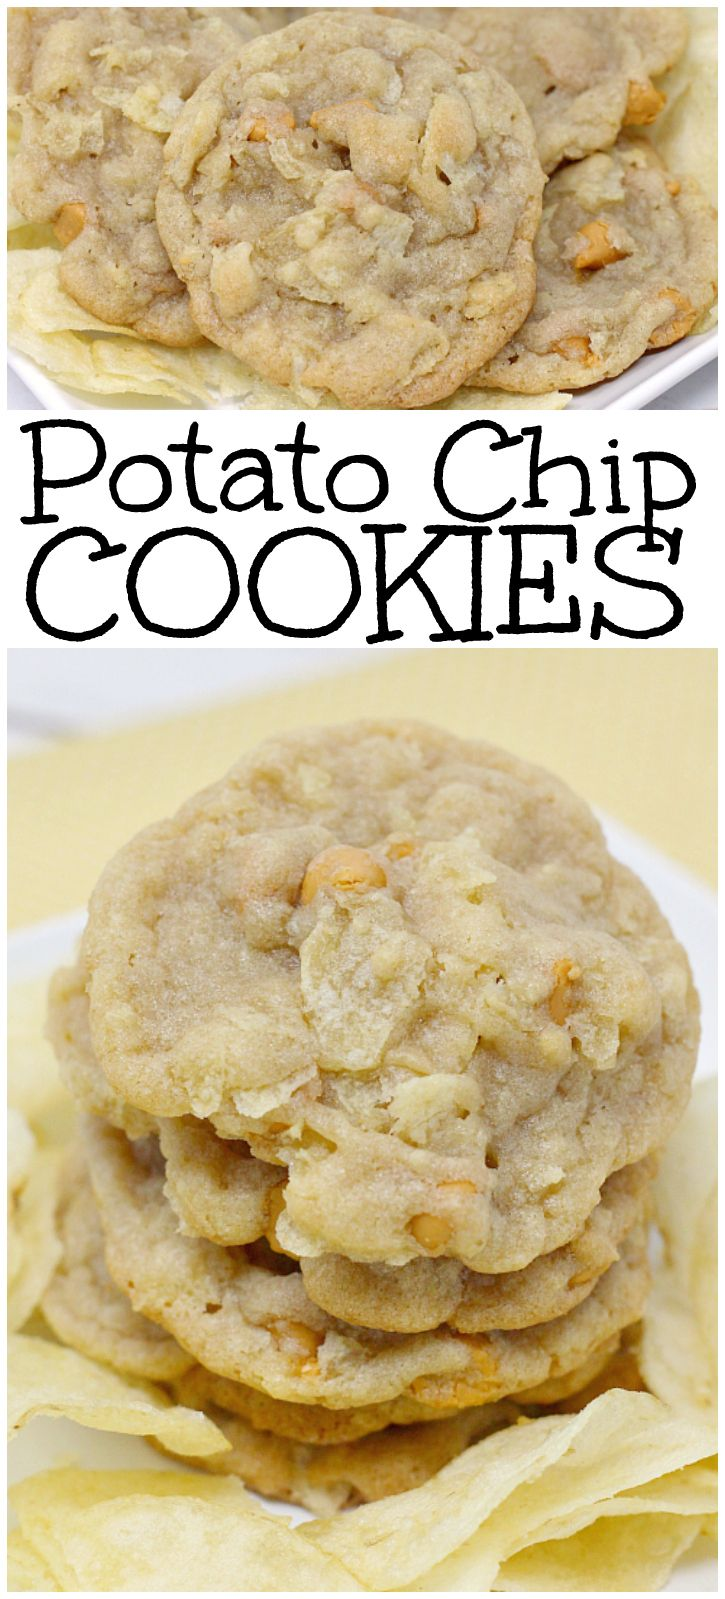 Potato Chip Cookies are the perfect combination of salty and sweet! The butterscotch chips and potato chips pair together so well in these cookies! Easy cookie recipe from Butter With A Side of Bread via @ButterGirls